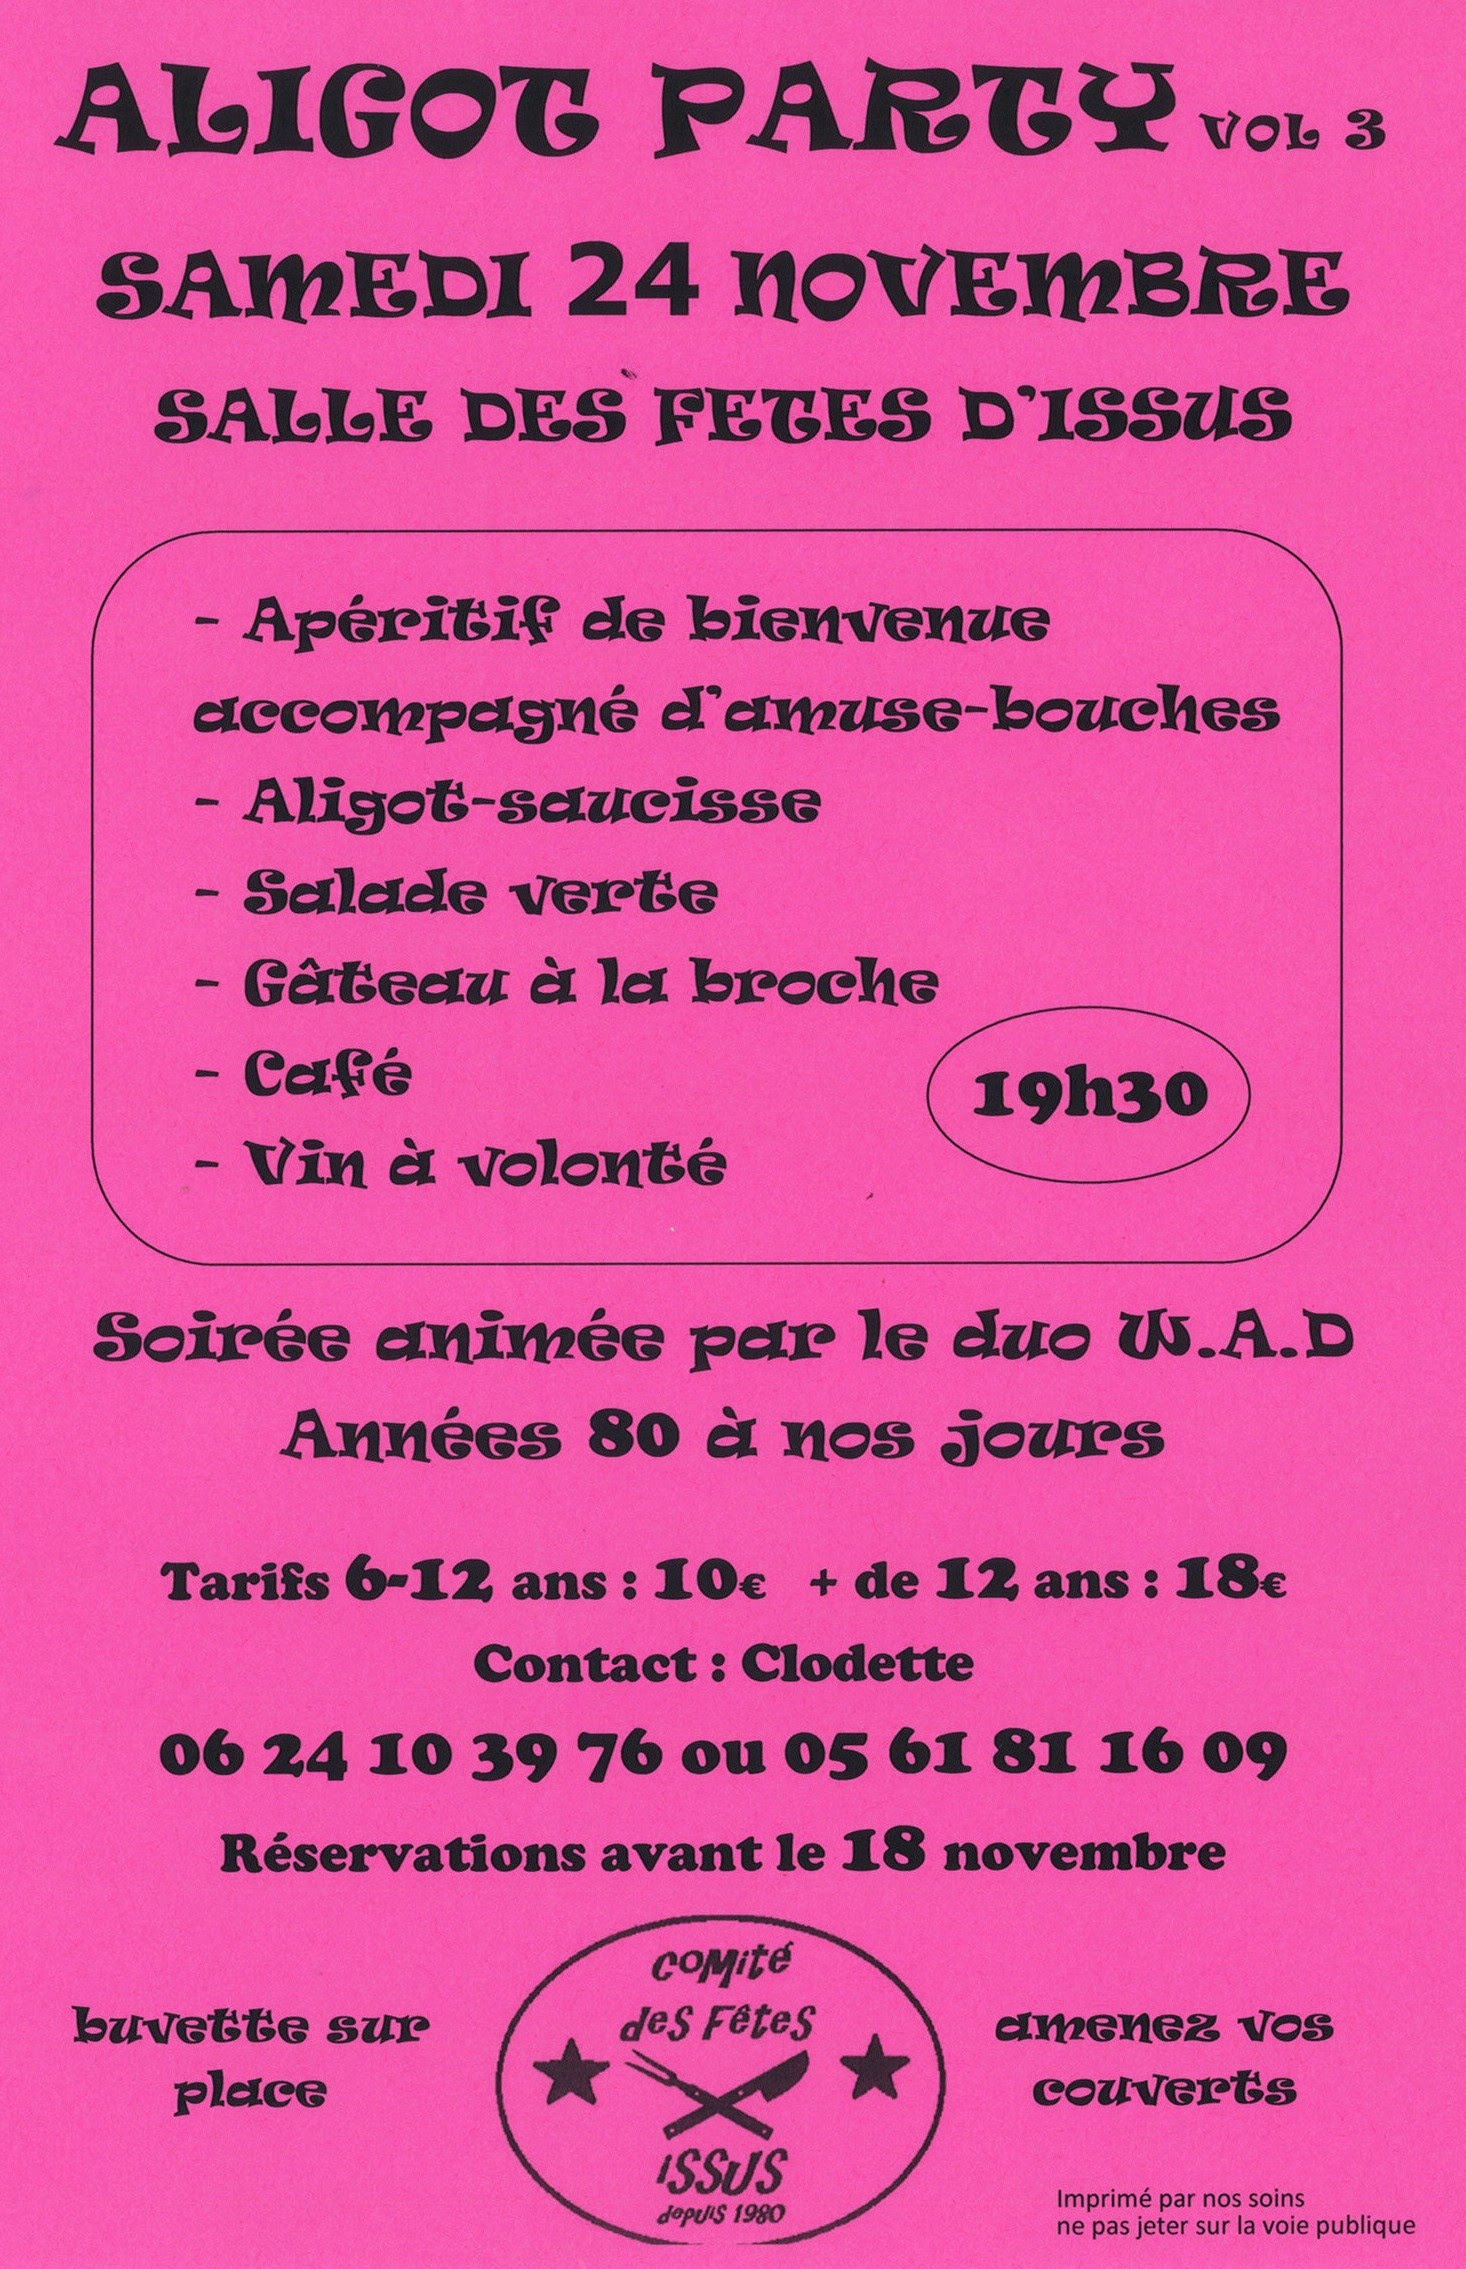 mairie d u0026 39 issus